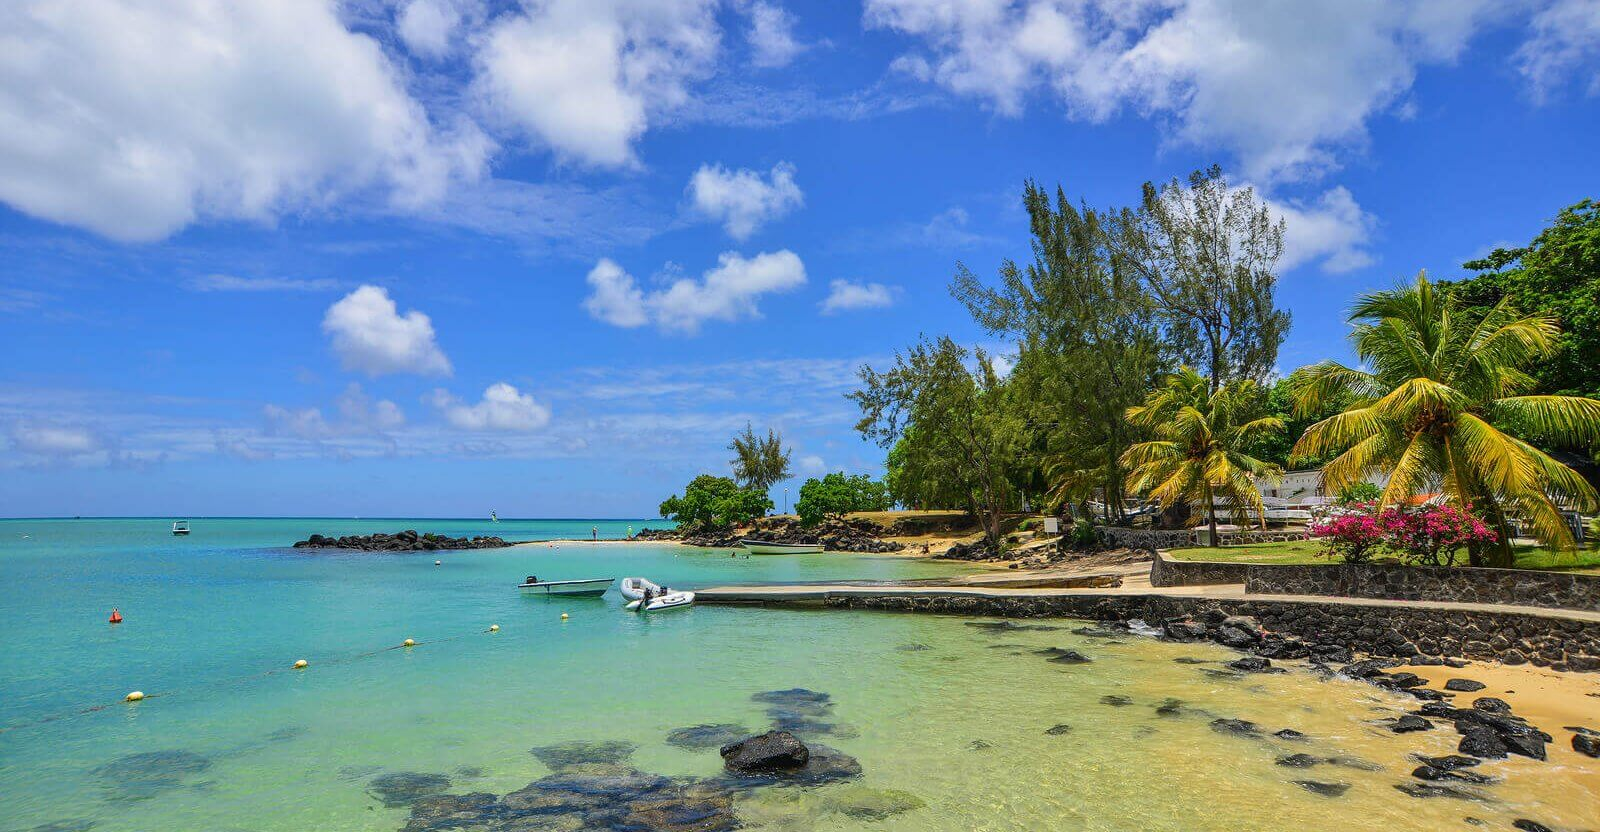 Seascape of Grand Baie, Mauritius.